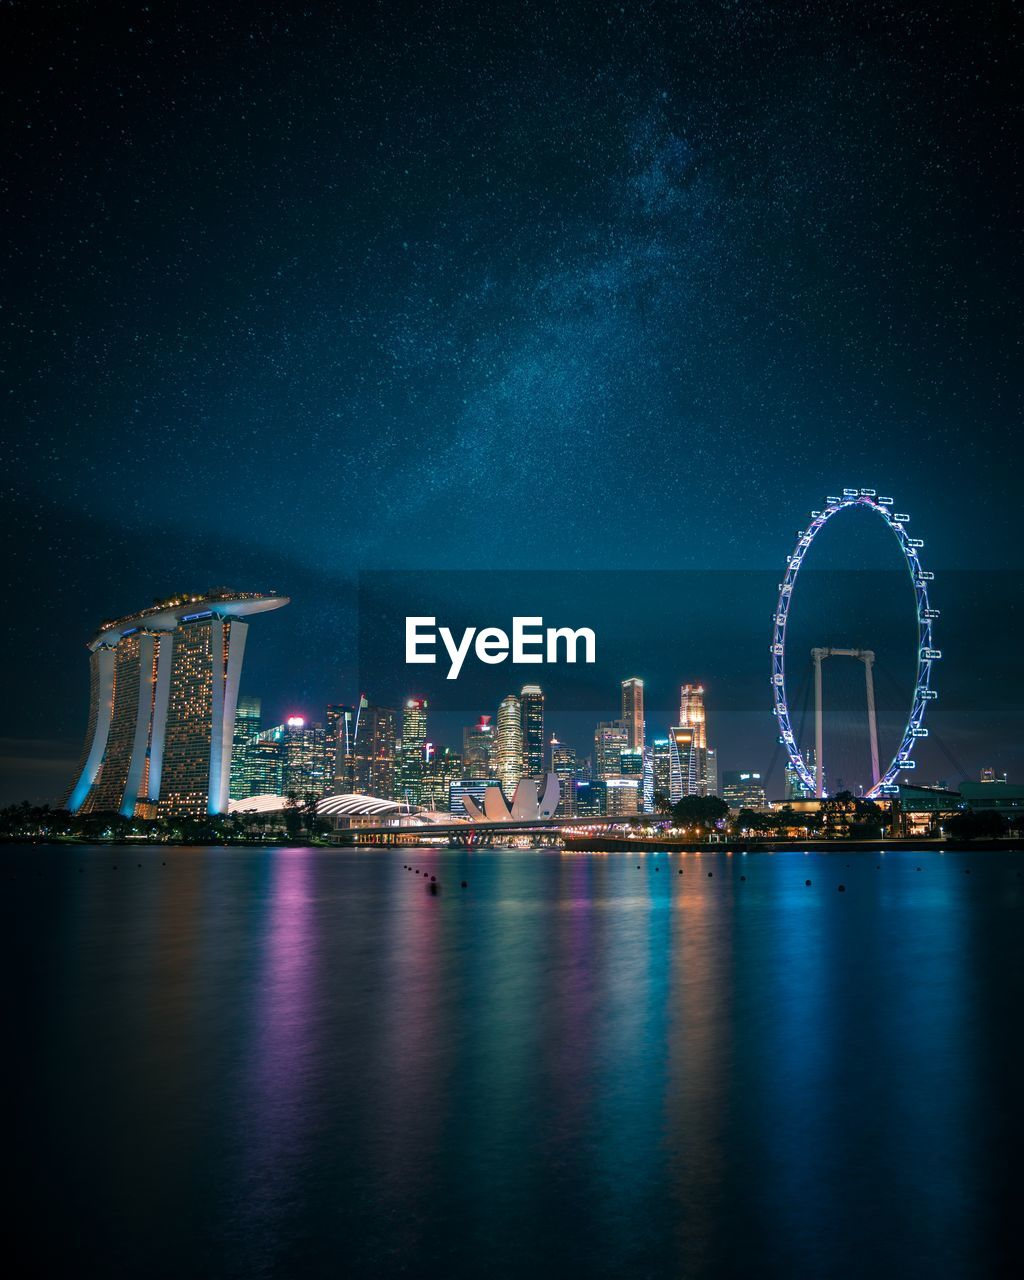 night, architecture, building exterior, built structure, water, illuminated, sky, city, waterfront, amusement park ride, amusement park, reflection, ferris wheel, building, nature, no people, river, office building exterior, travel destinations, skyscraper, cityscape, tall - high, outdoors, modern, bay